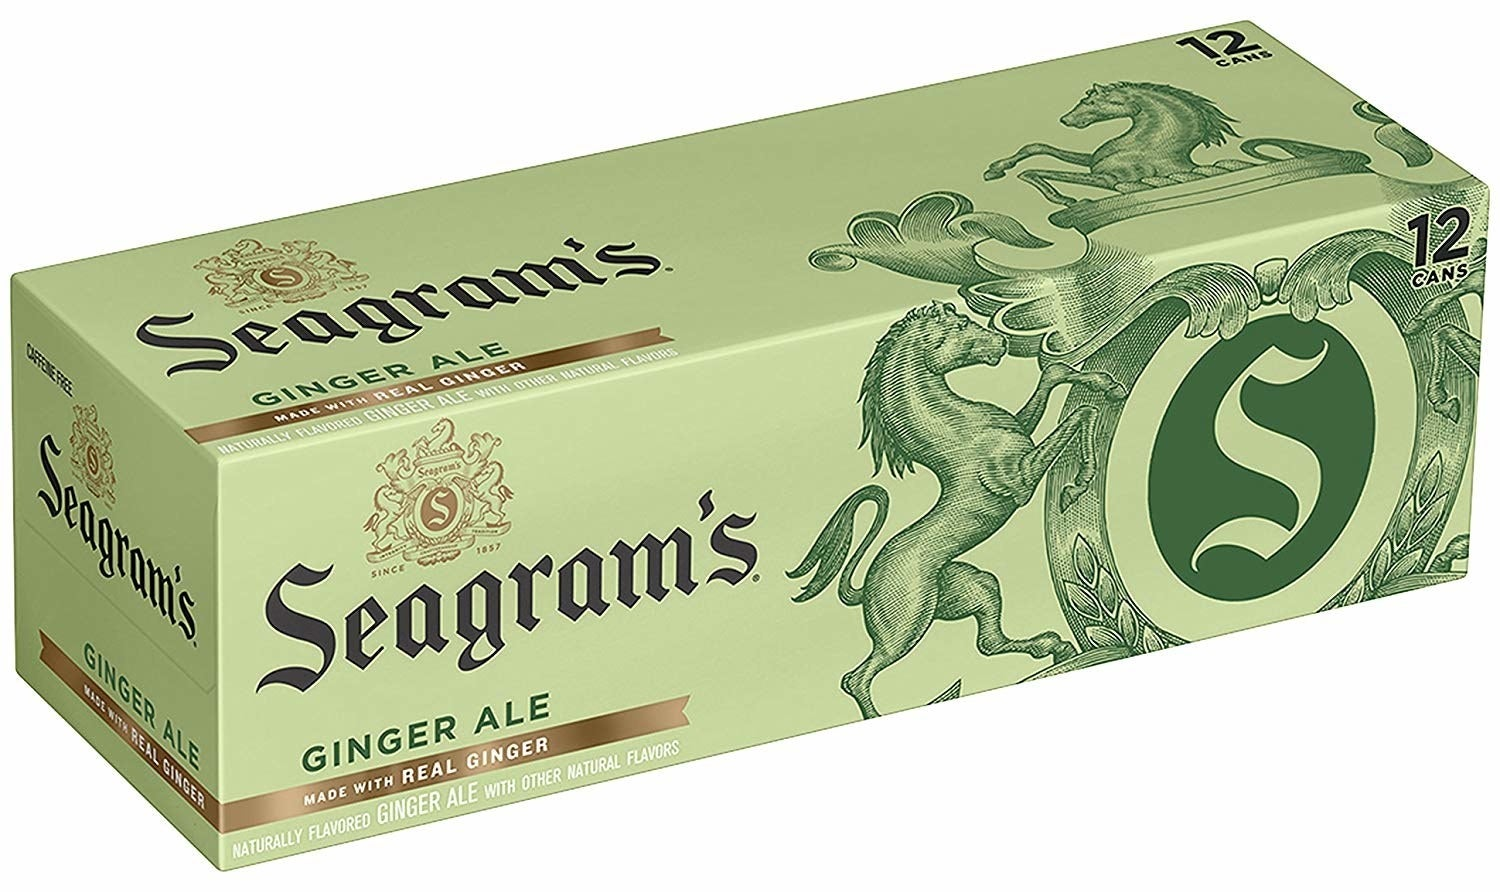 A green box of Seagram's canned ginger ale soda. The box shows that it holds 12 cans.